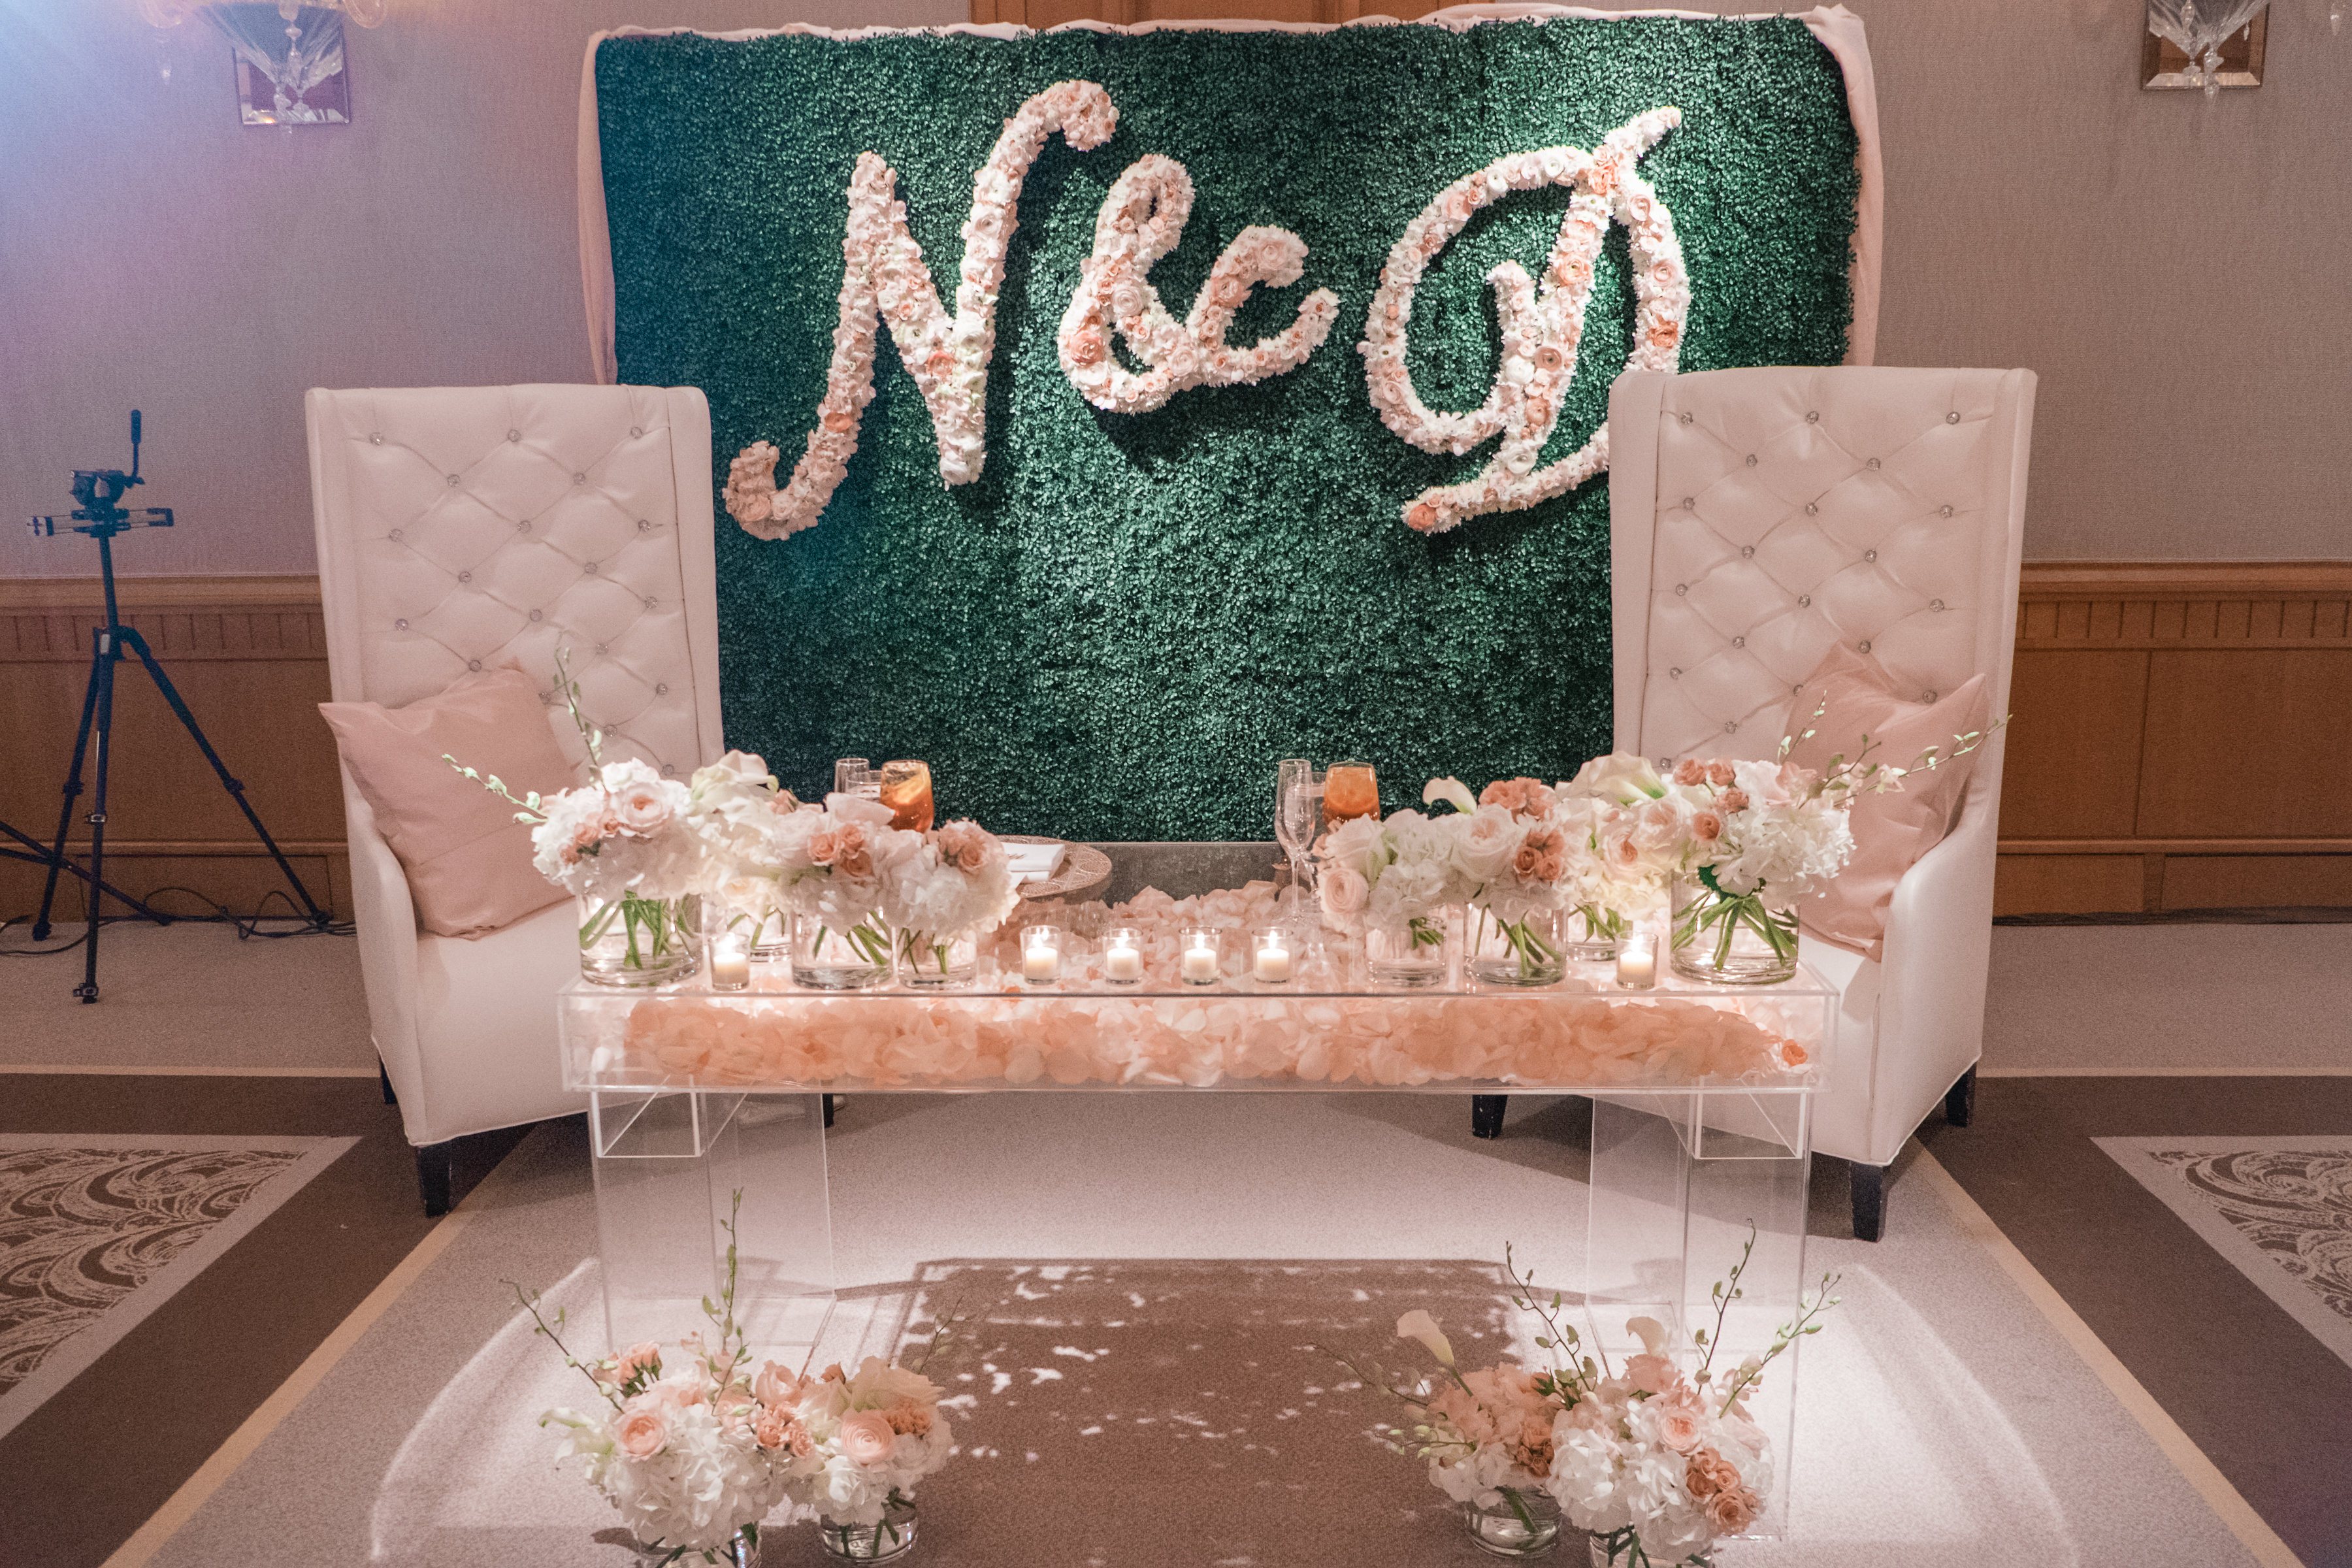 david_nicole_wedding-1509